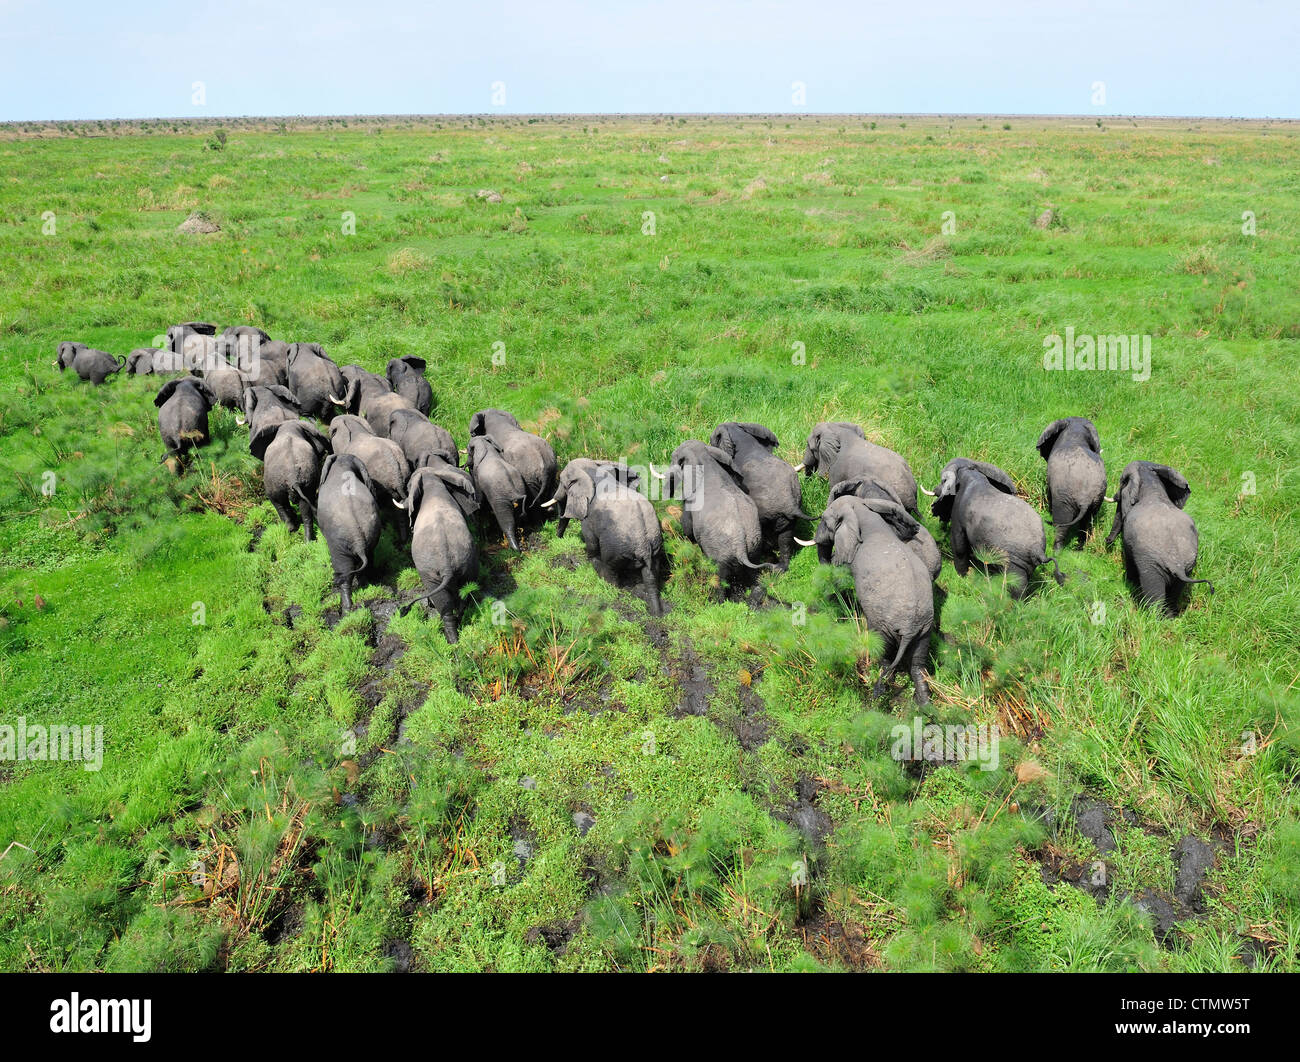 Elephant herd in swampland, Shambe Game Reserve west of the Nile, Republic of South Sudan - Stock Image